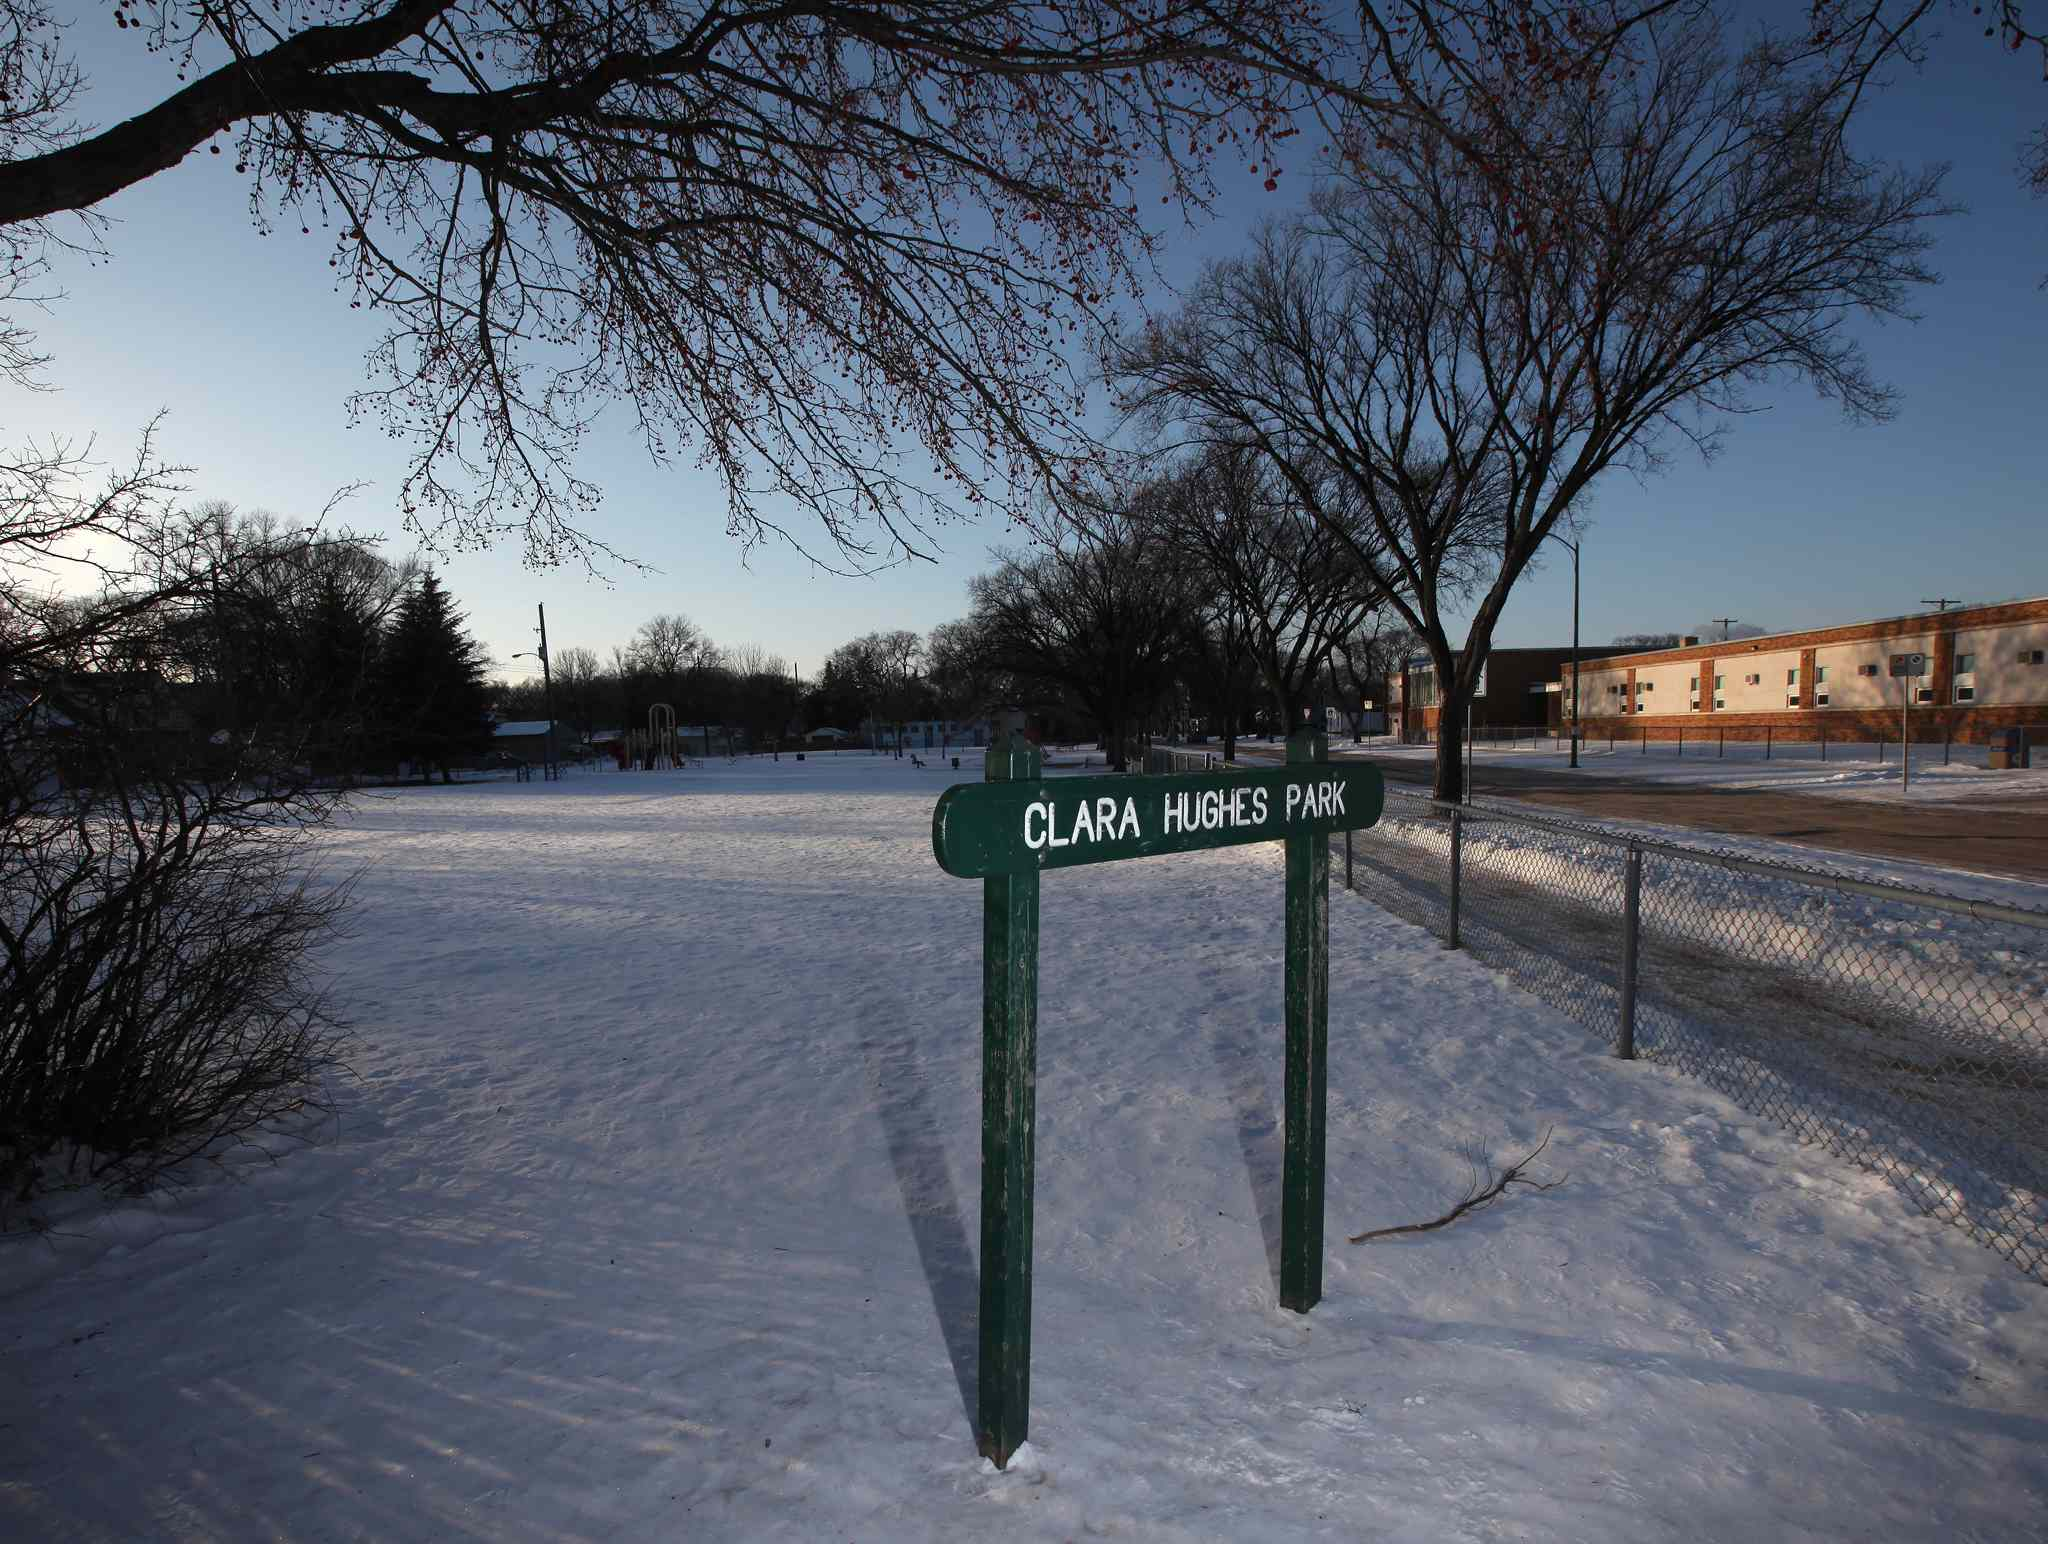 A proposed city hall budget would see the wading pool at Clara Hughes Park closed.